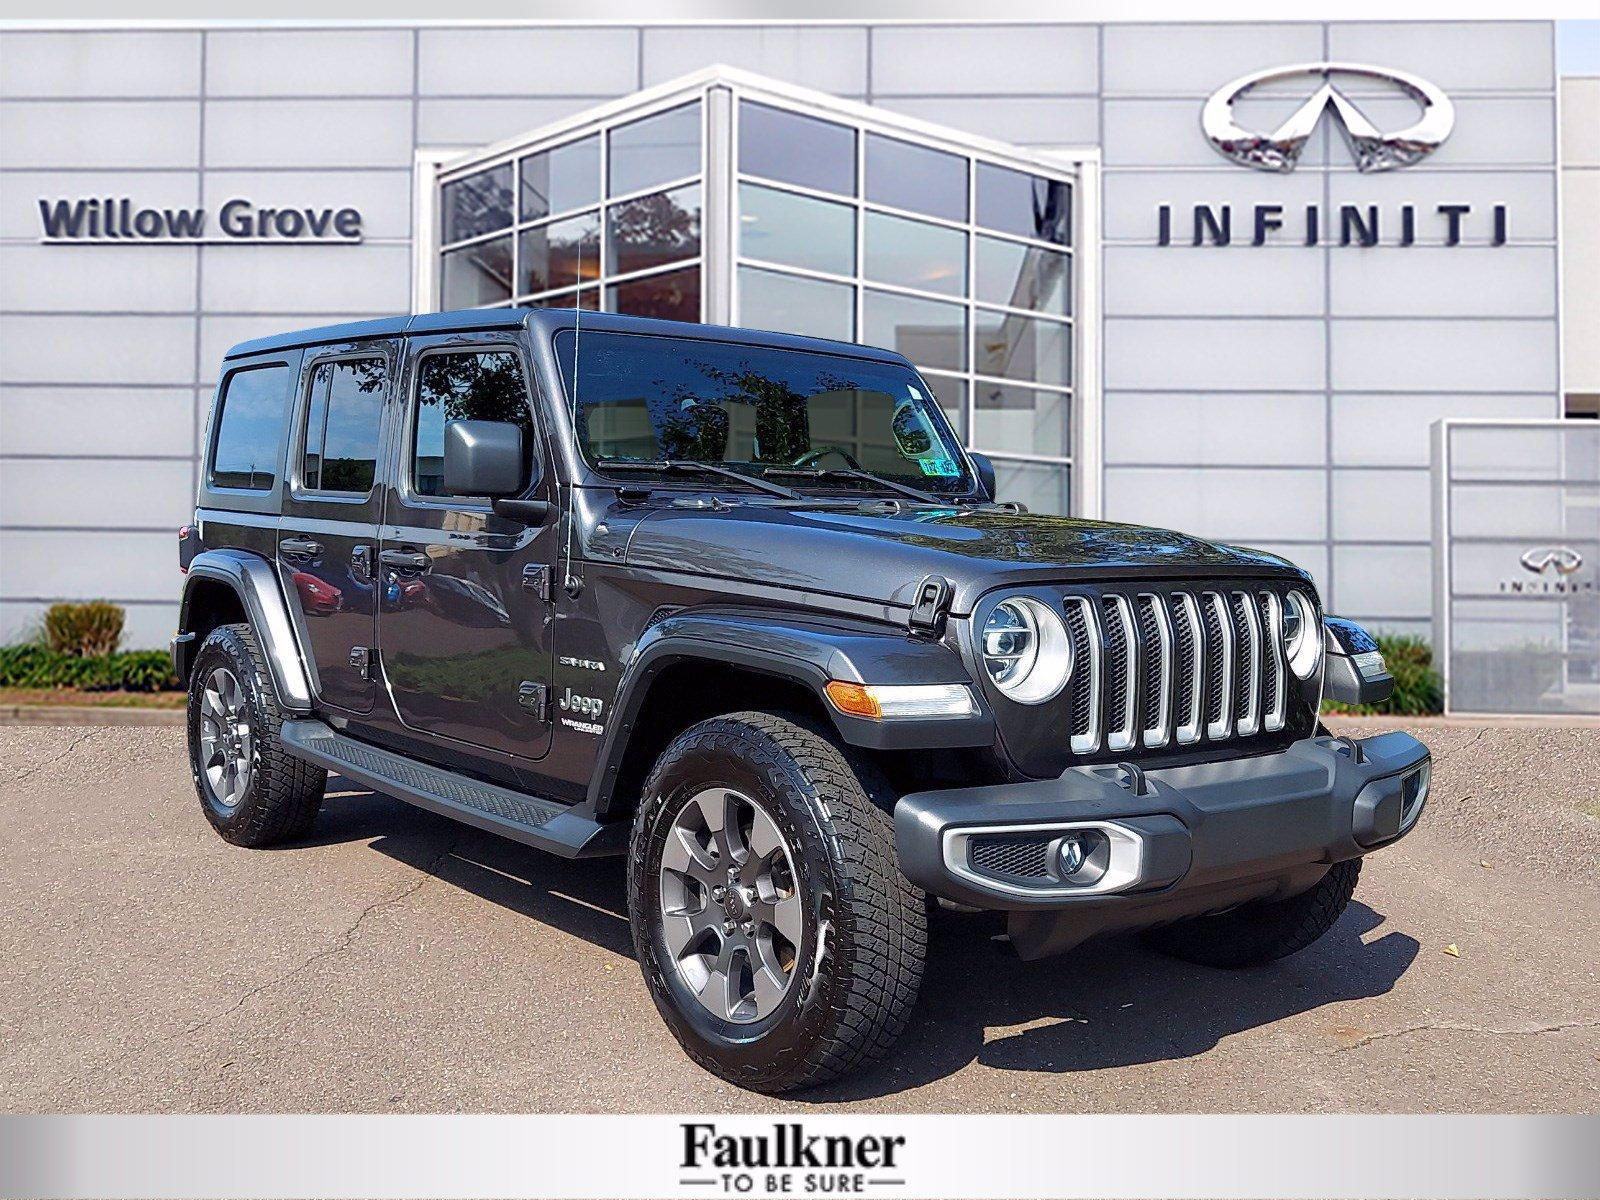 2018 Jeep Wrangler Unlimited Vehicle Photo in Willow Grove, PA 19090